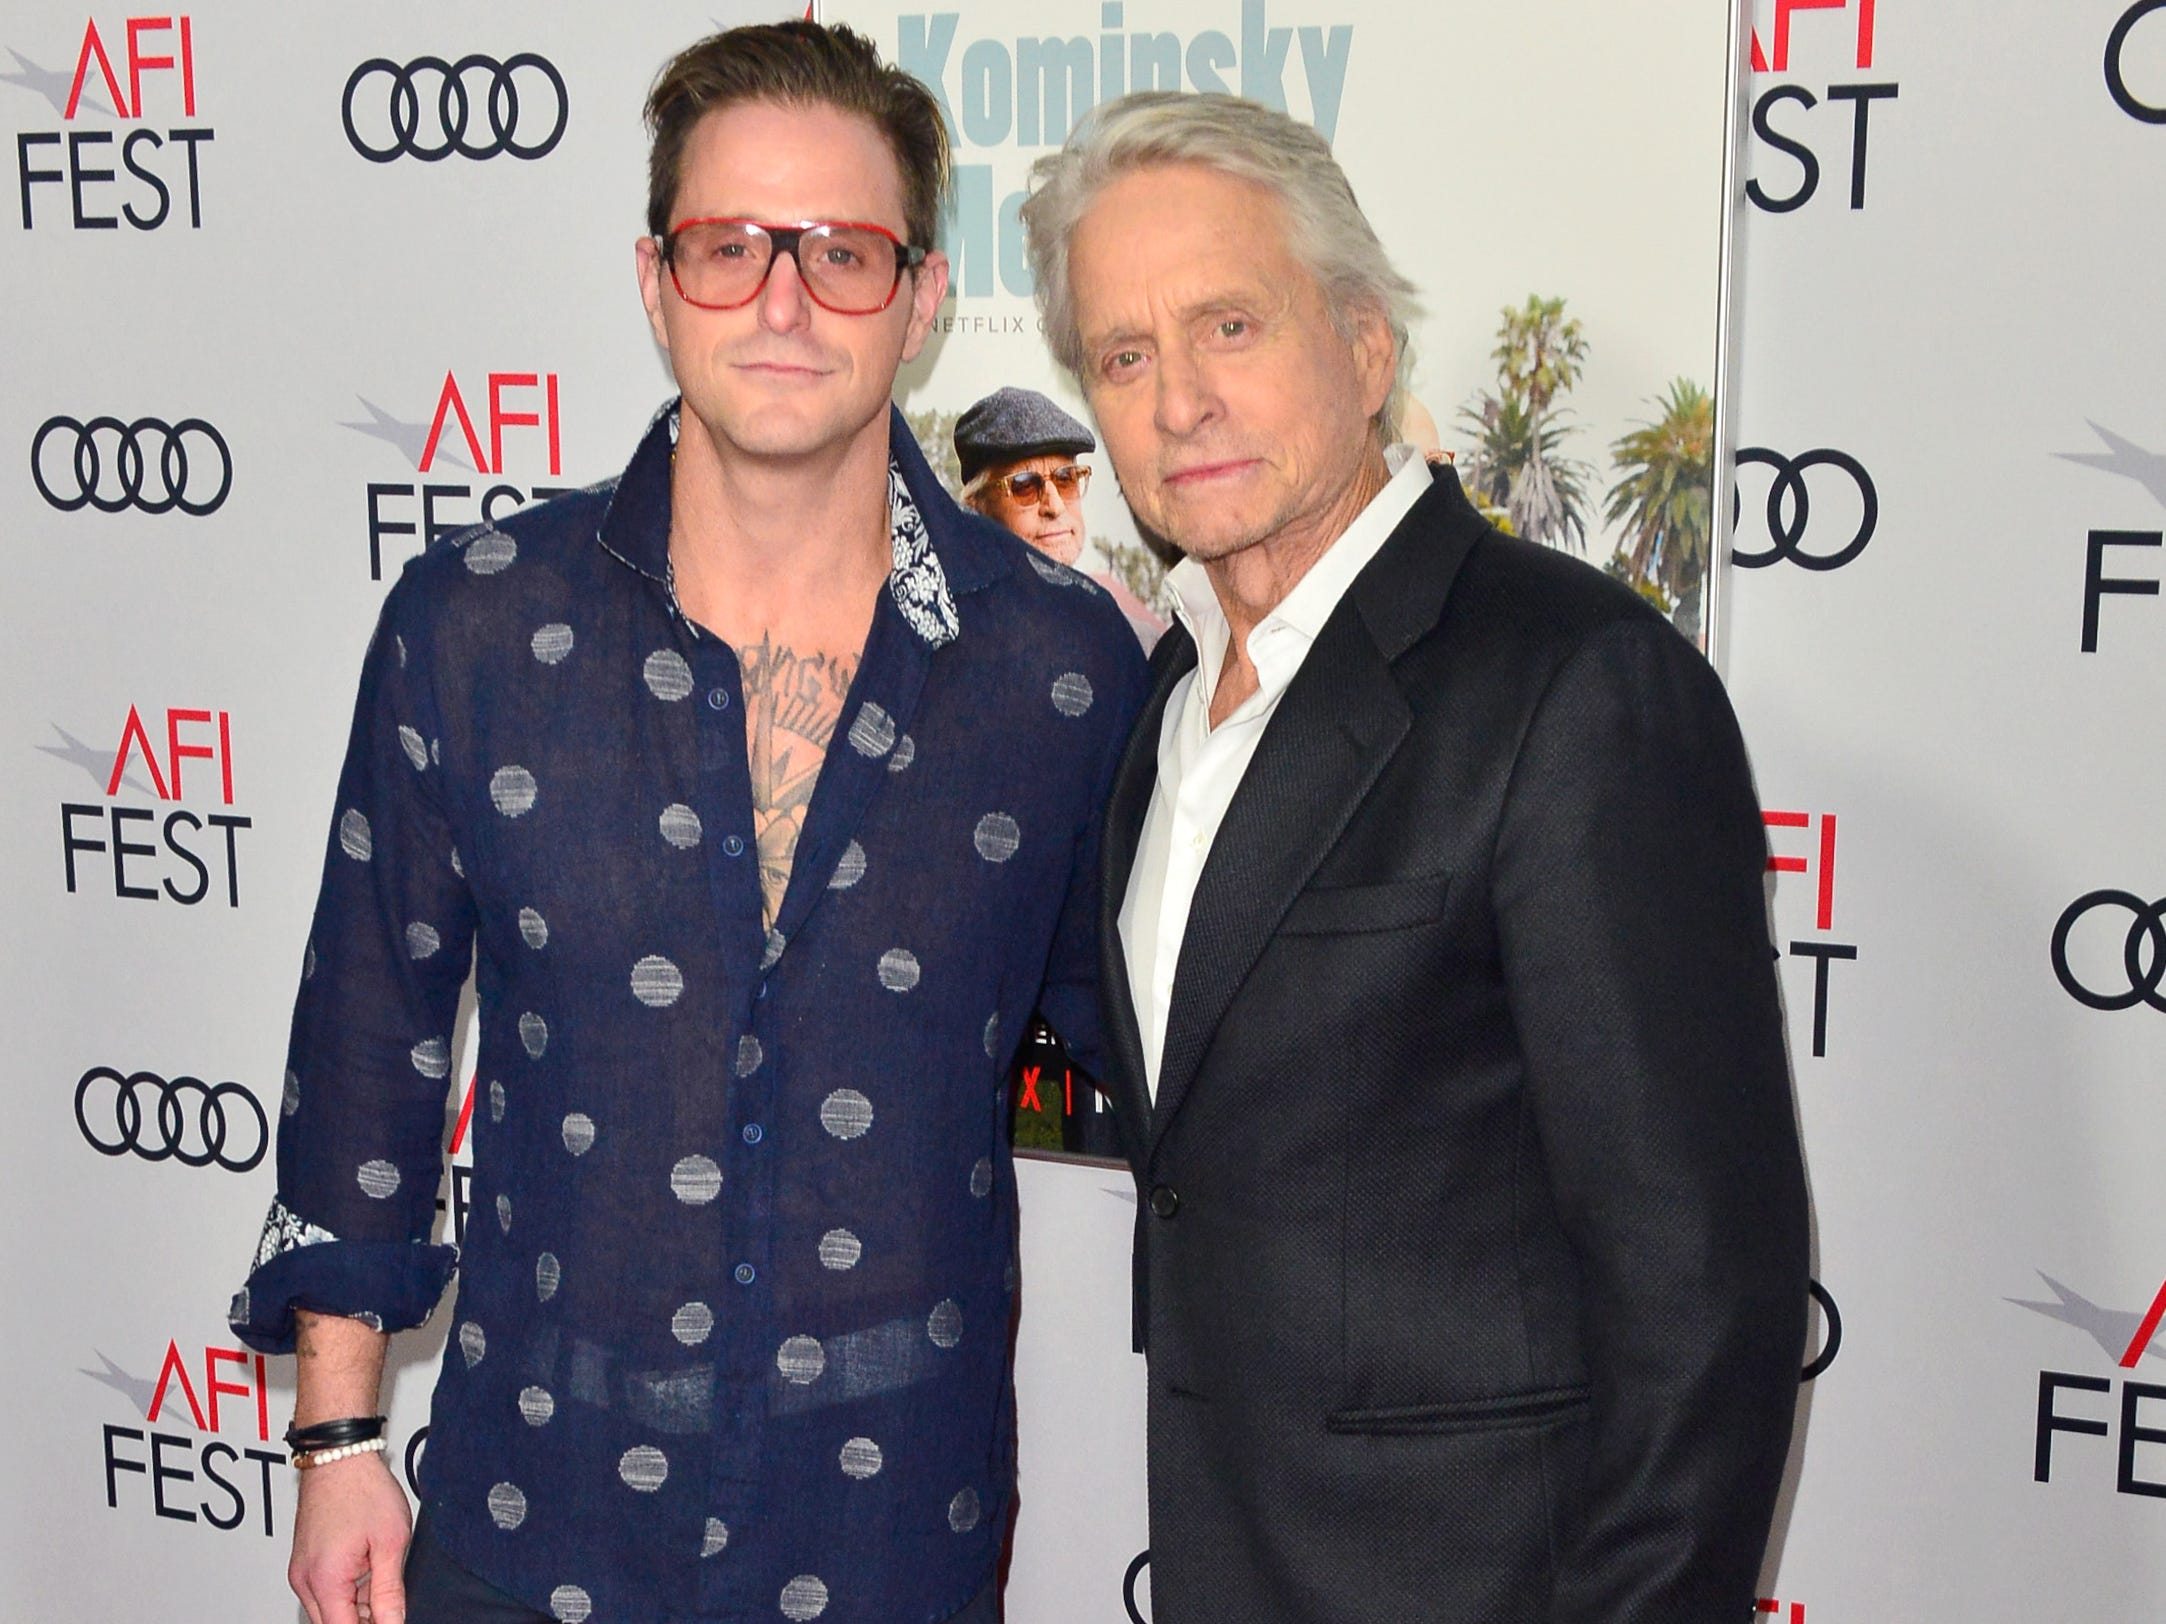 "HOLLYWOOD, CA - NOVEMBER 10:  Cameron Douglas (L) and Michael Douglas attend the Gala Screening of ""The Kominsky Method"" at AFI FEST 2018 Presented By Audi at TCL Chinese Theatre on November 10, 2018 in Hollywood, California.  (Photo by Jerod Harris/Getty Images) ORG XMIT: 775252142 ORIG FILE ID: 1060101888"